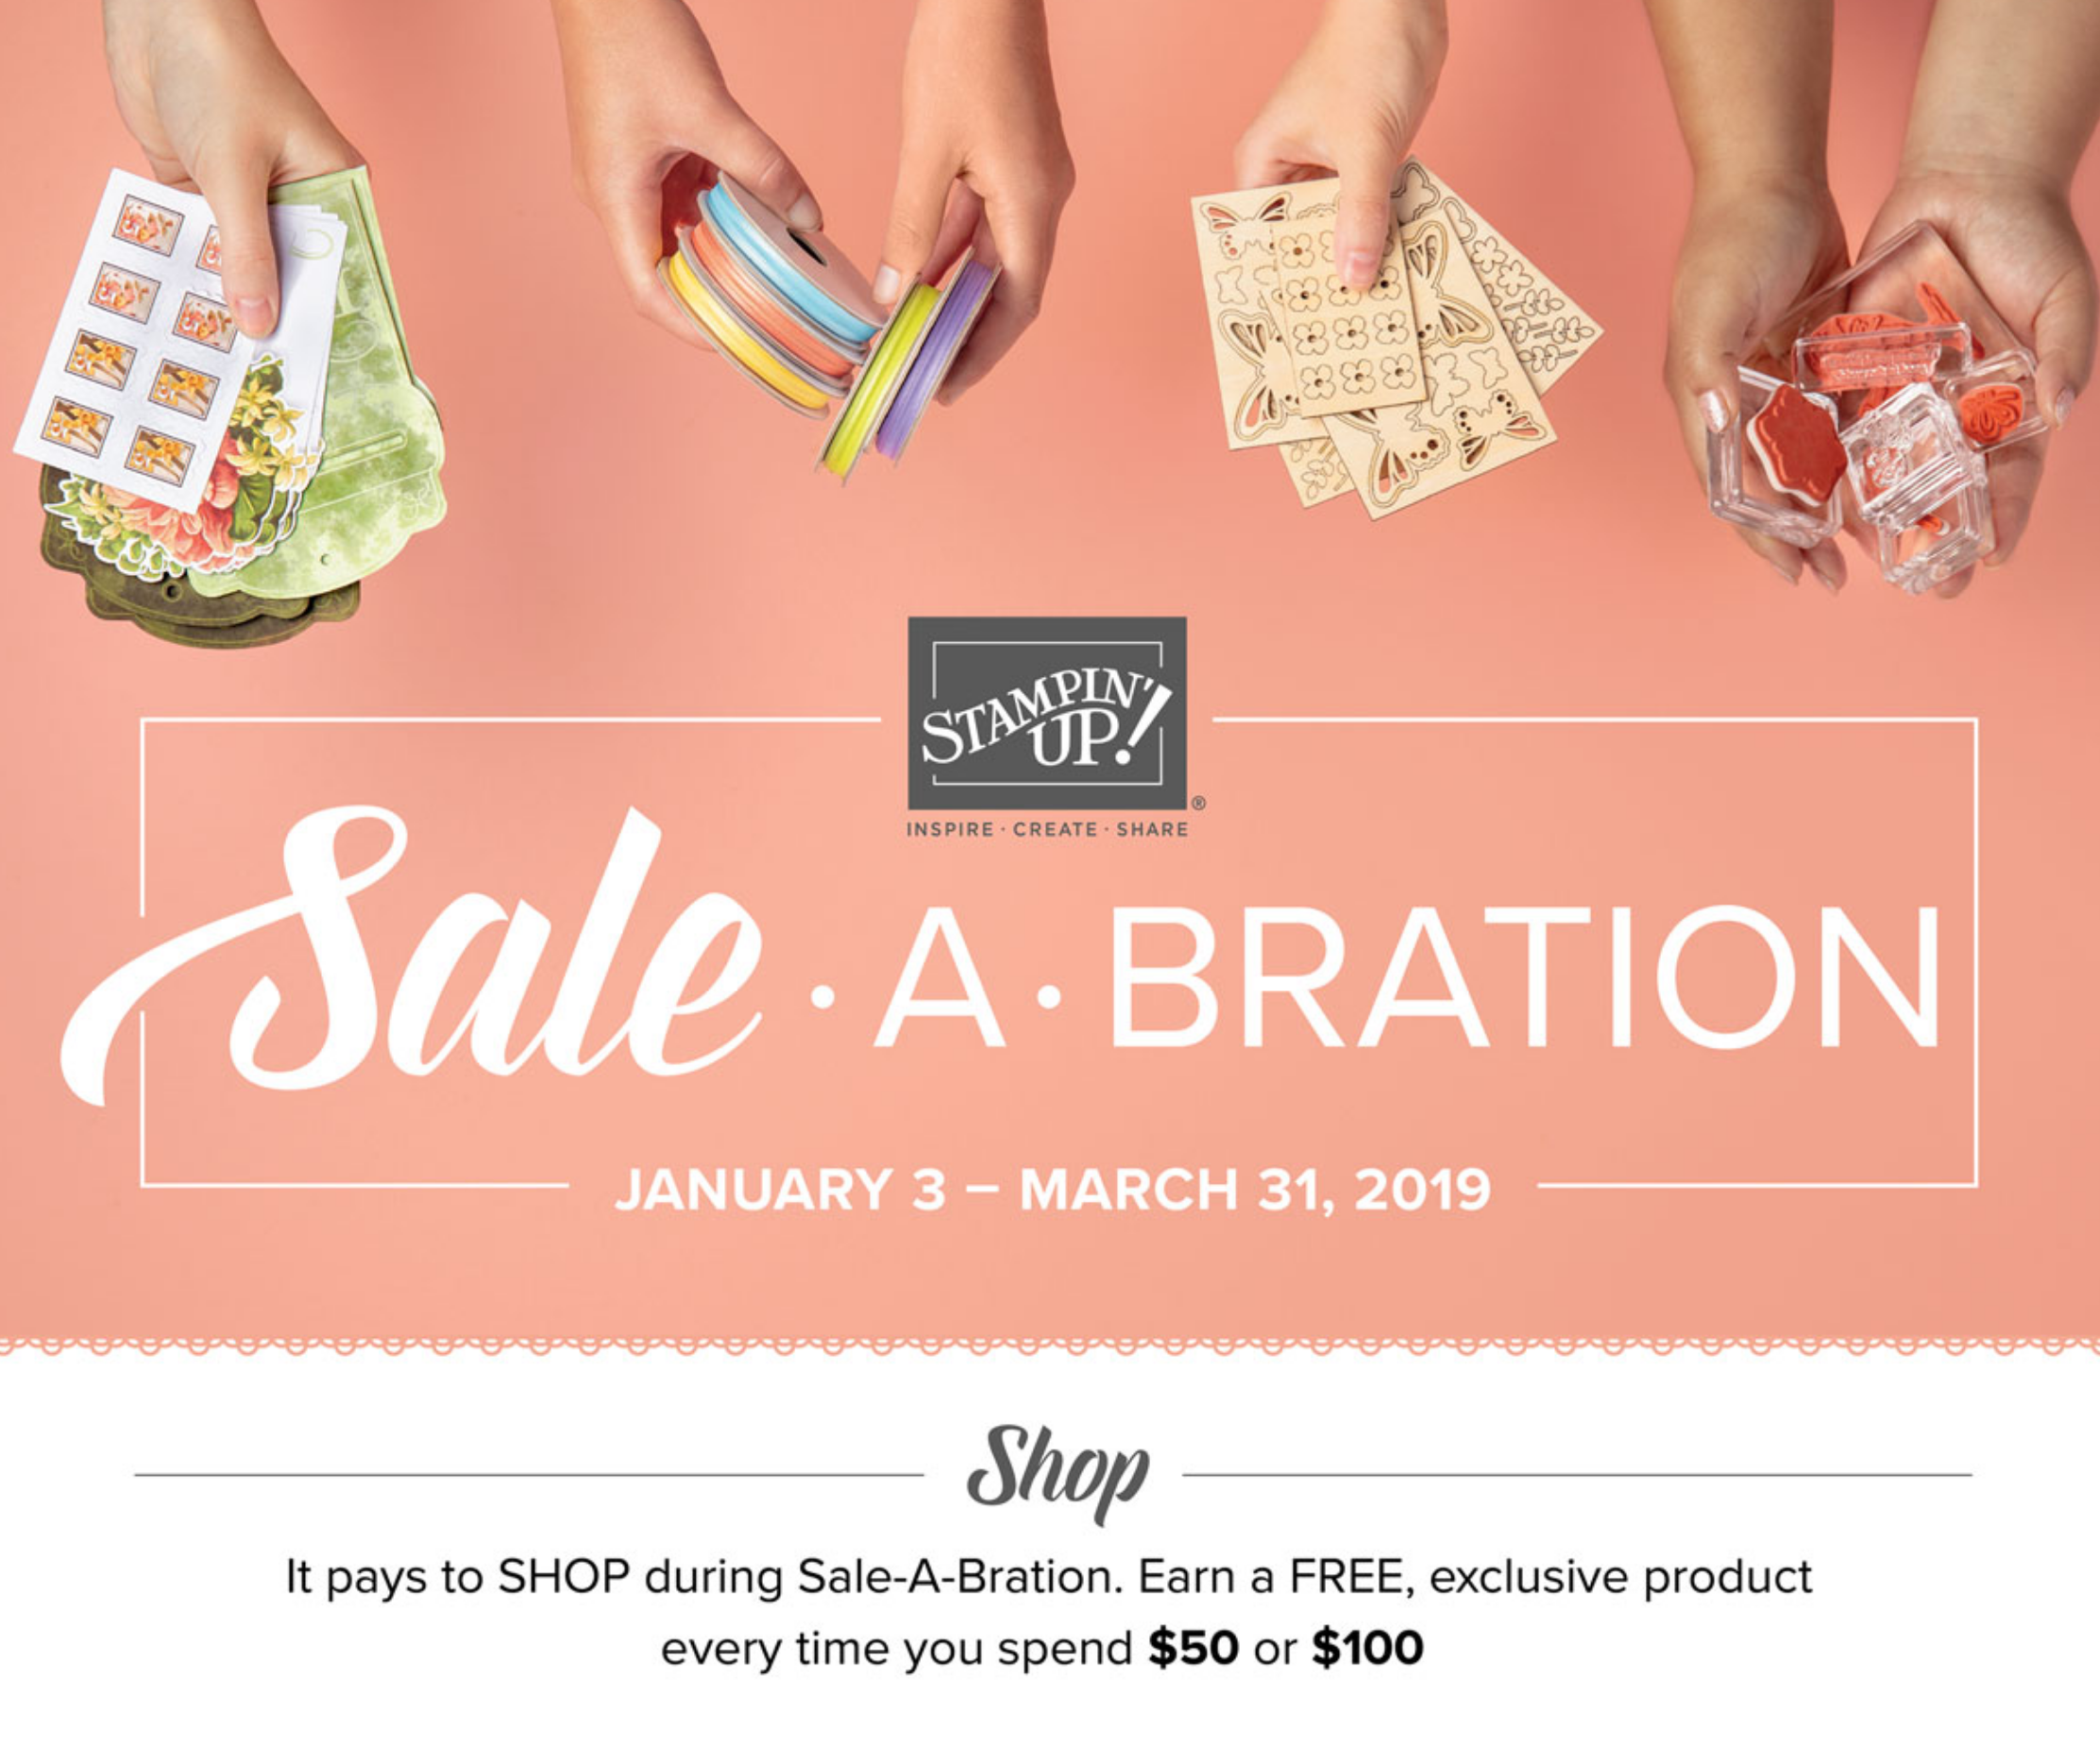 Sale-a-Bration 2019 – Learn how to get these free limited